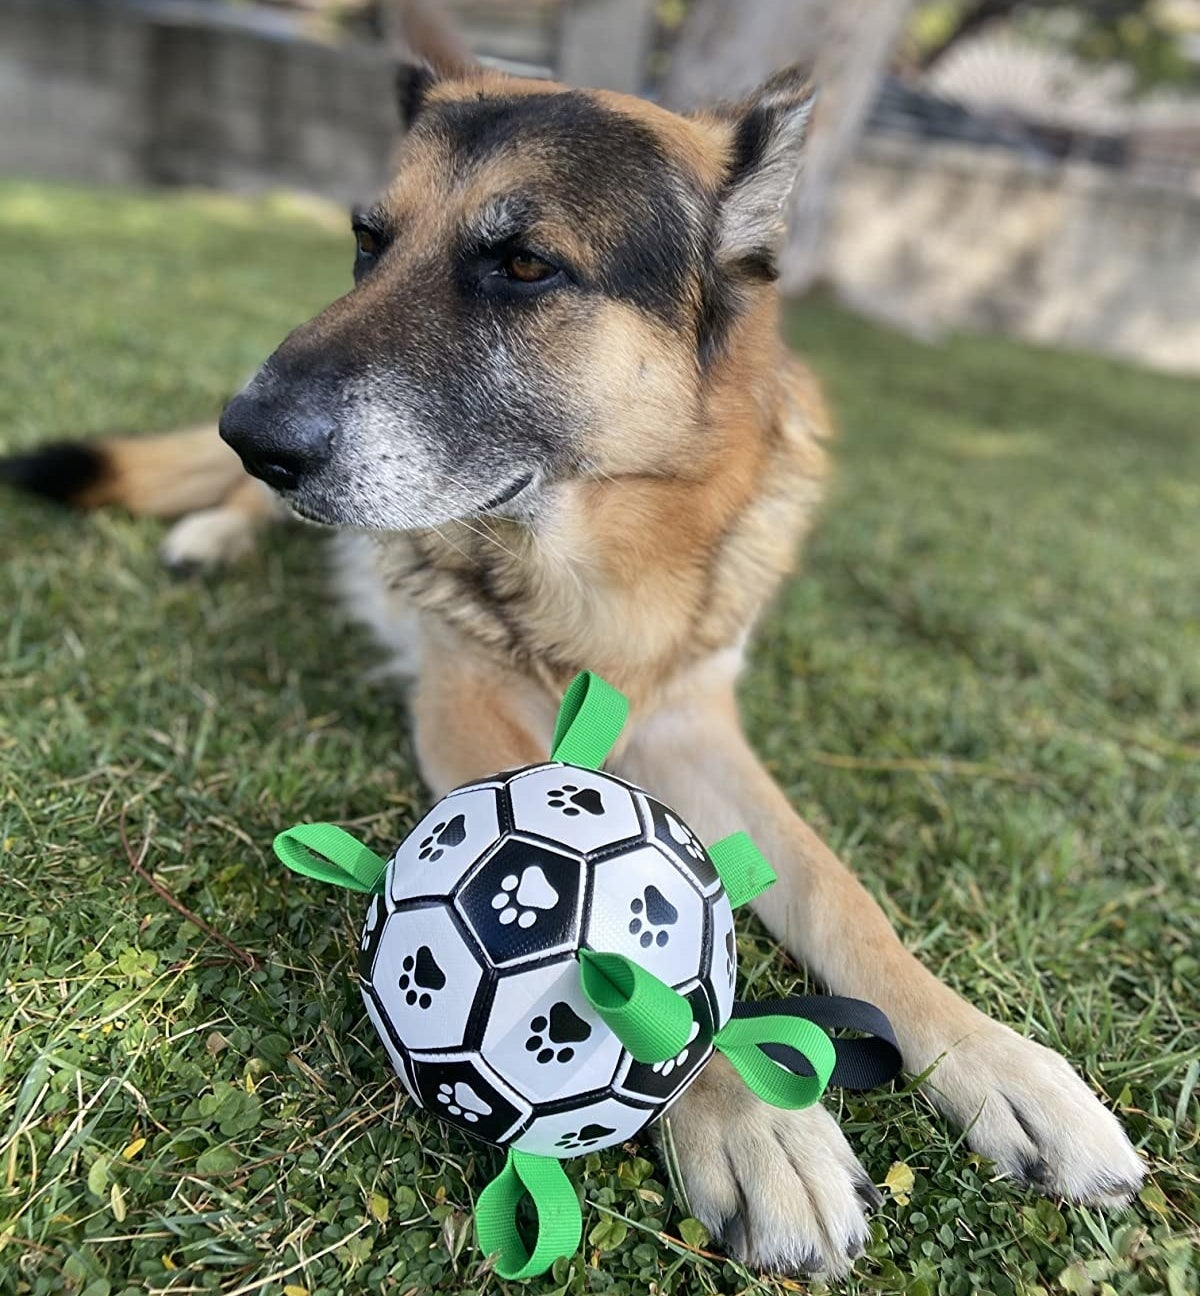 Dog in yard with ball